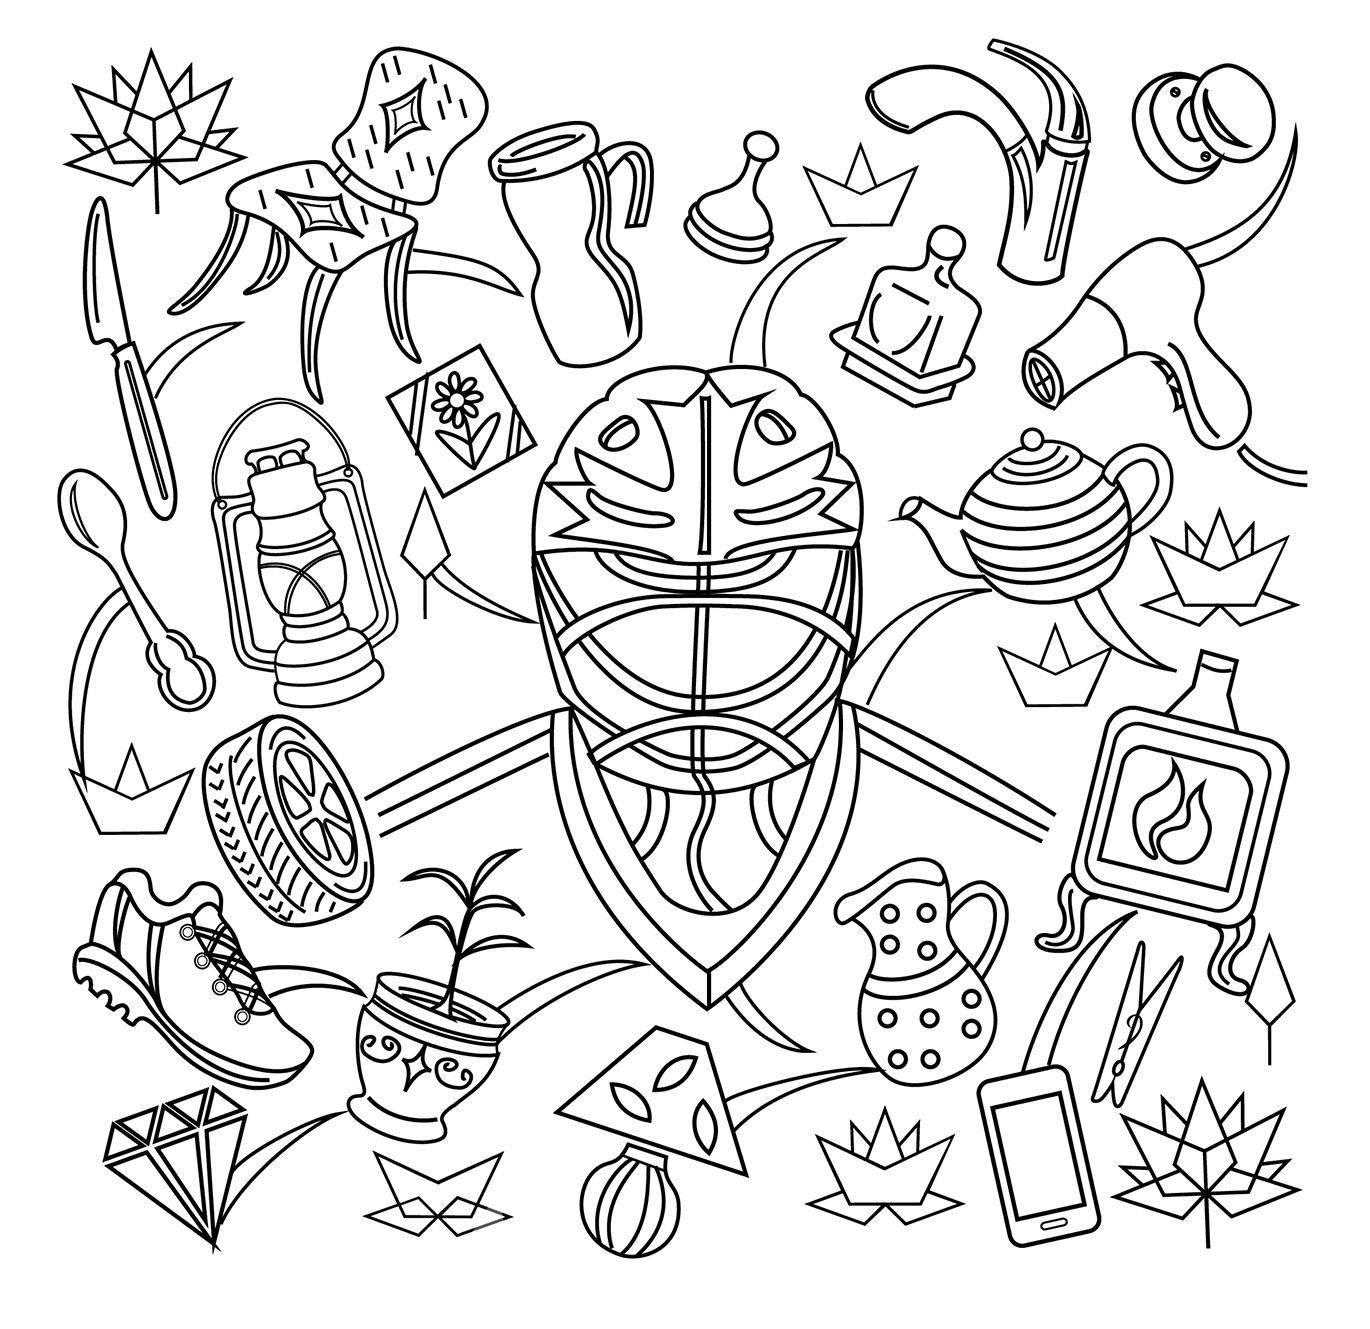 A book of canadian innovation canadian intellectual property office colouring page featuring sample items that could be subject matter for industrial design registration and a biocorpaavc Images